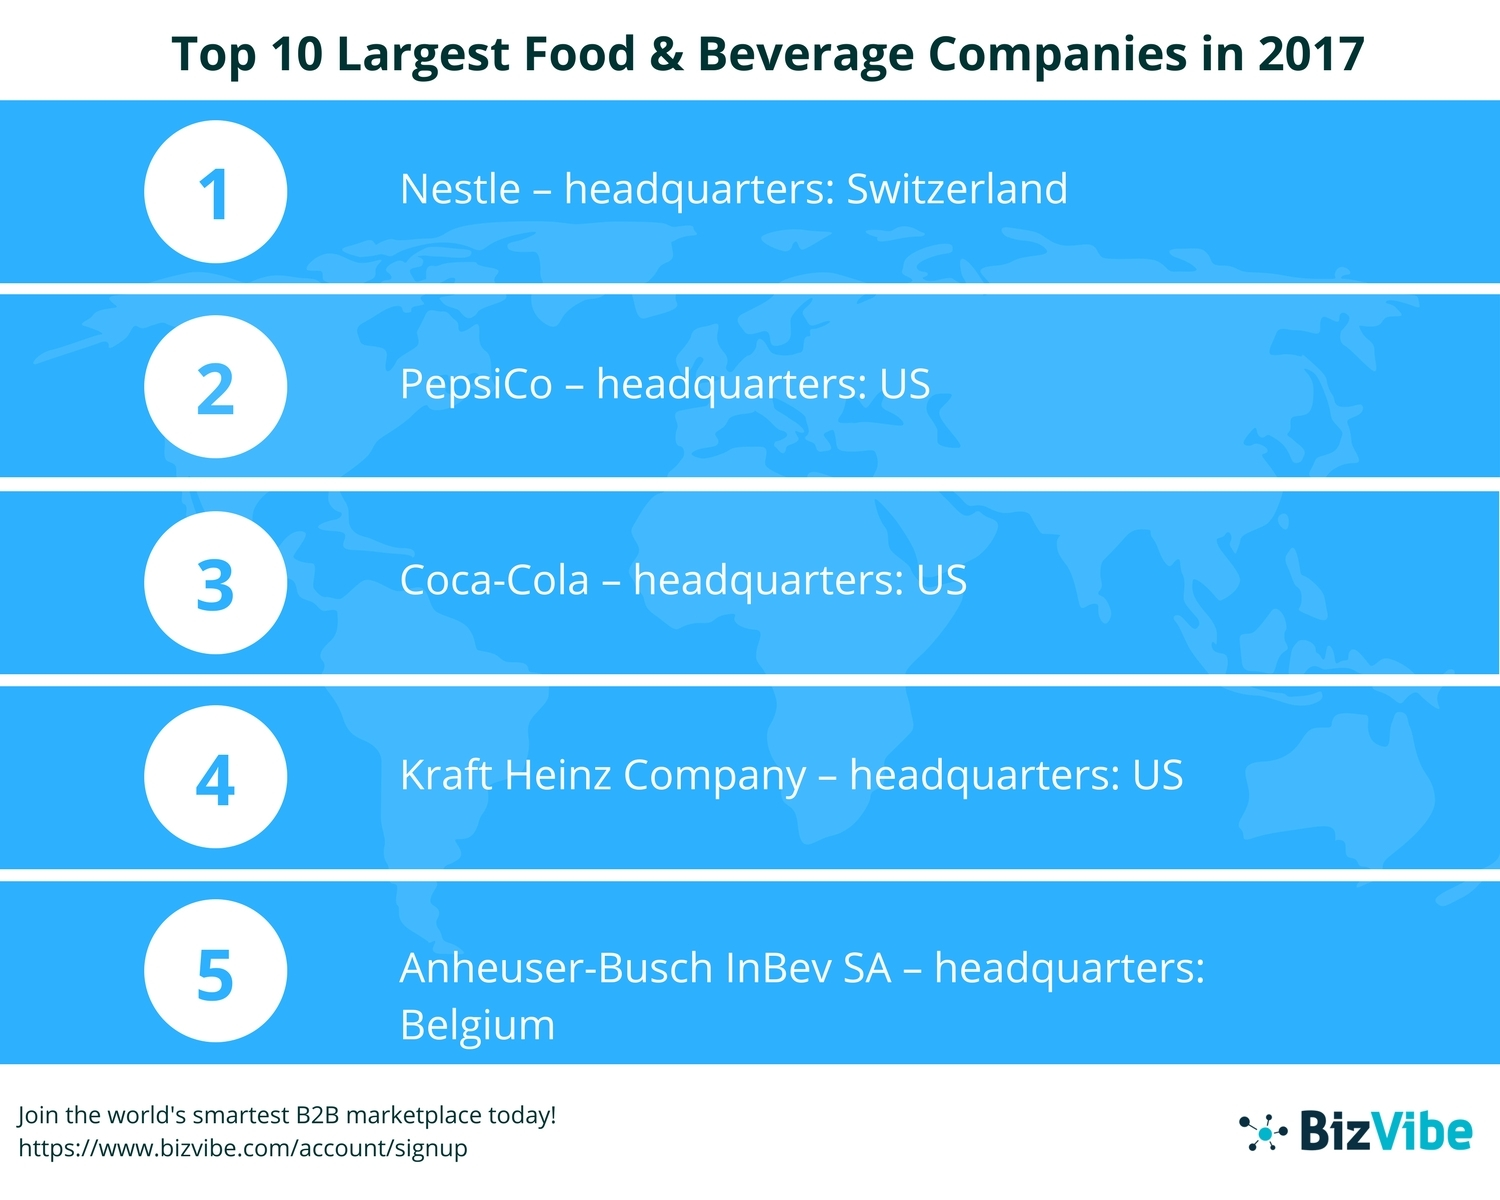 BizVibe Announces Their List of the Top 10 Largest Food & Beverage